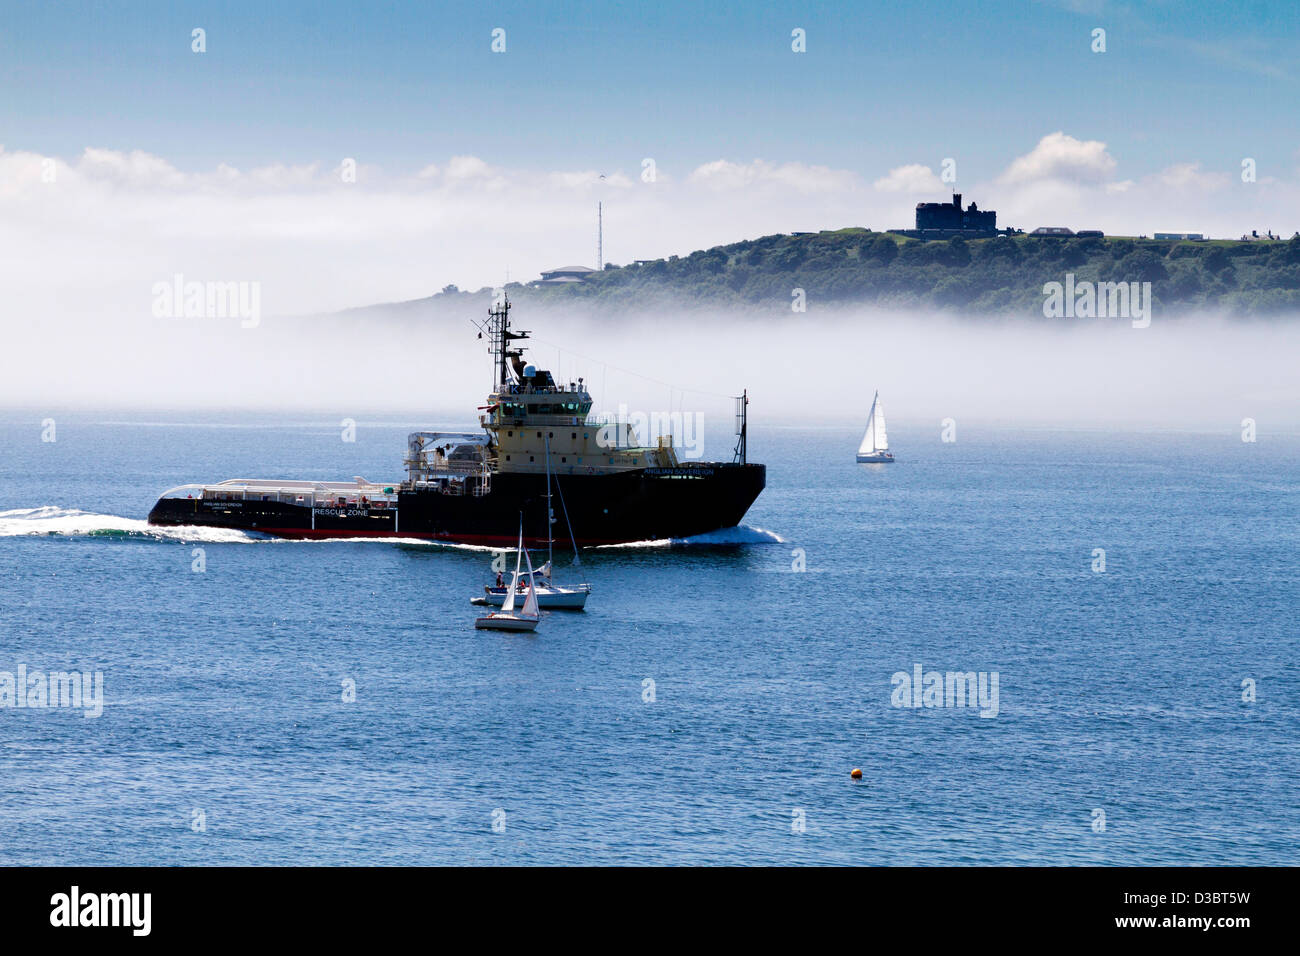 The Anglian Sovereign enters Carrick Roads with a fog bank building on the far side of the estuary - Stock Image